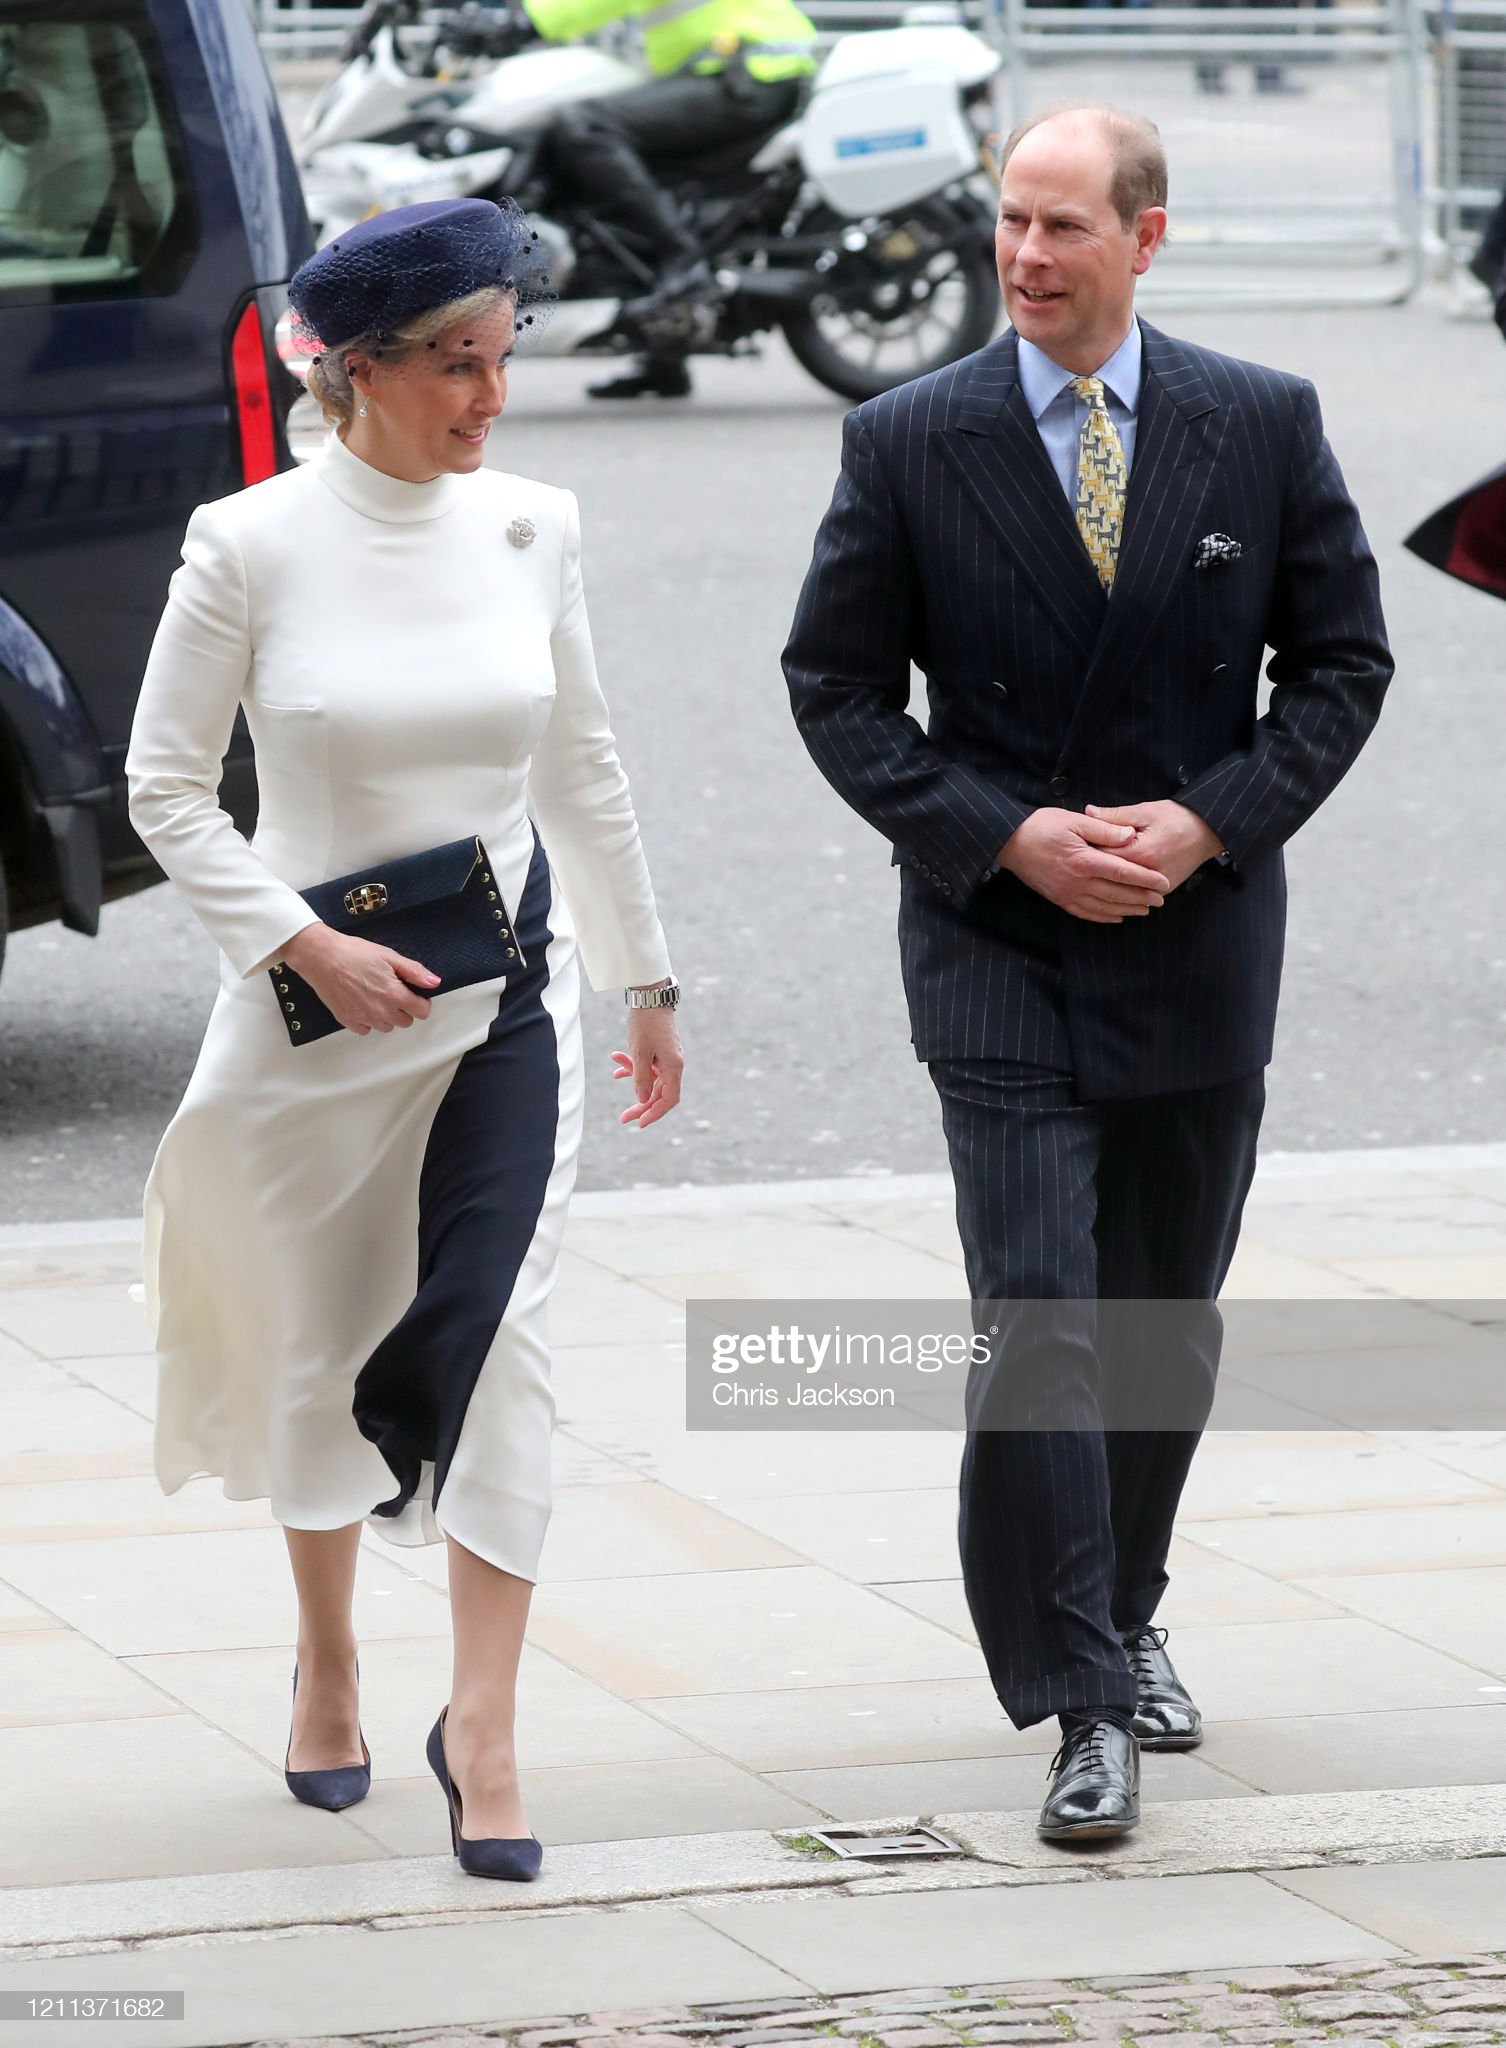 https://media.gettyimages.com/photos/sophie-countess-of-wessex-and-prince-edward-earl-of-wessex-attend-the-picture-id1211371682?s=2048x2048